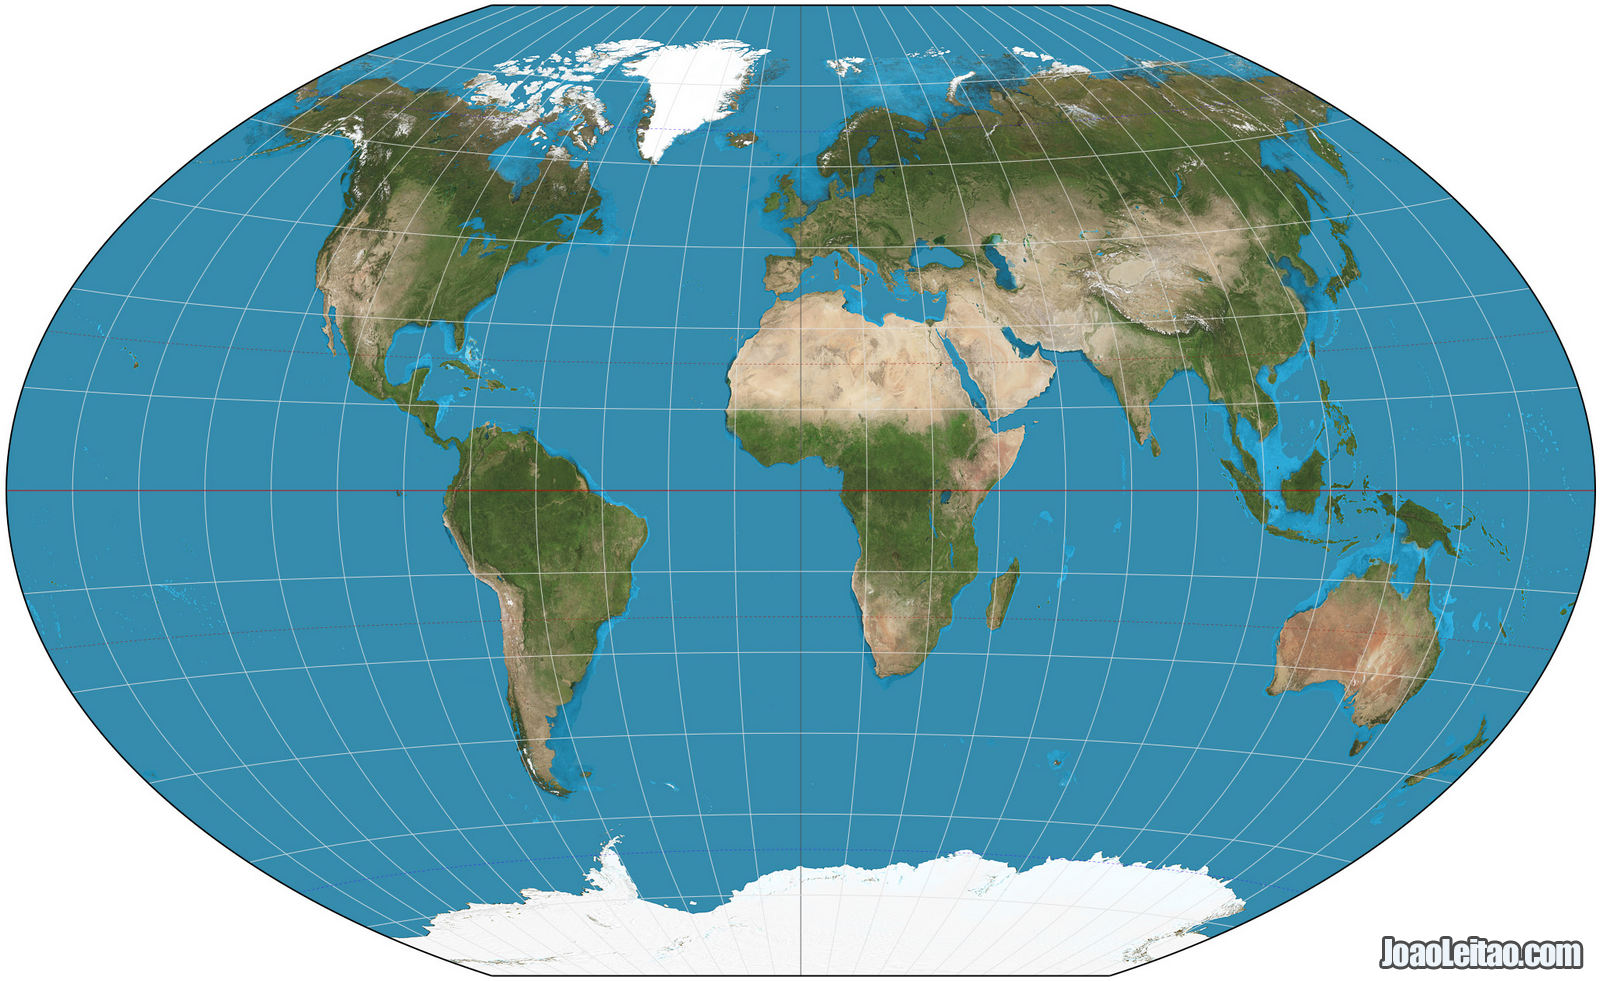 World map with the Winkel Tripel projection